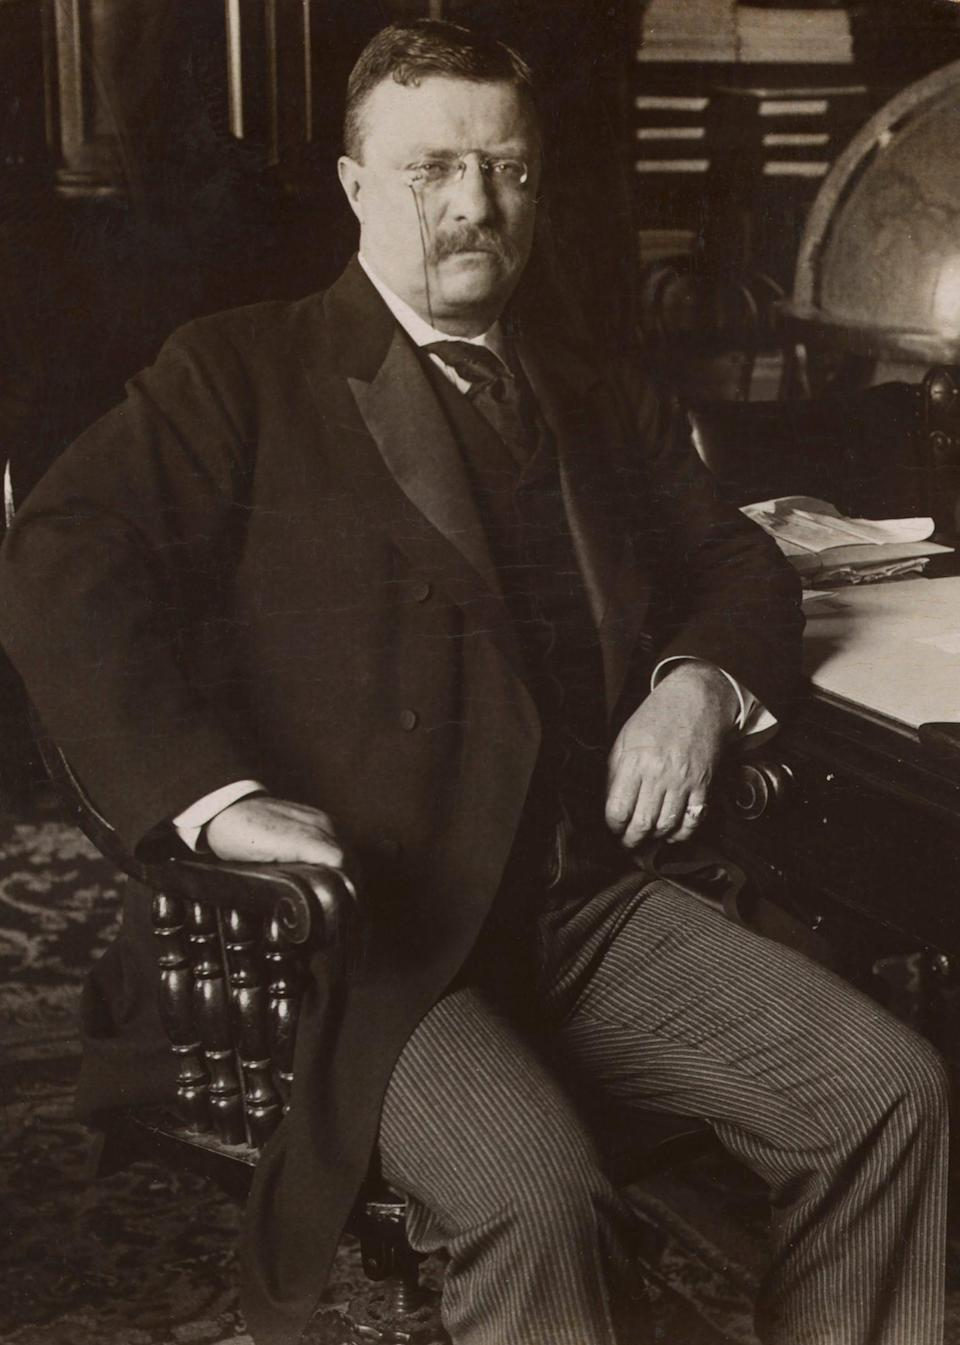 """<p>The White House has had many names over the years — including the """"President's House"""" and the """"Executive Mansion"""" — but it has exclusively been called the White House since 1901, when President Theodore Roosevelt decided the unique name would help distinguish it from other government buildings. </p>"""